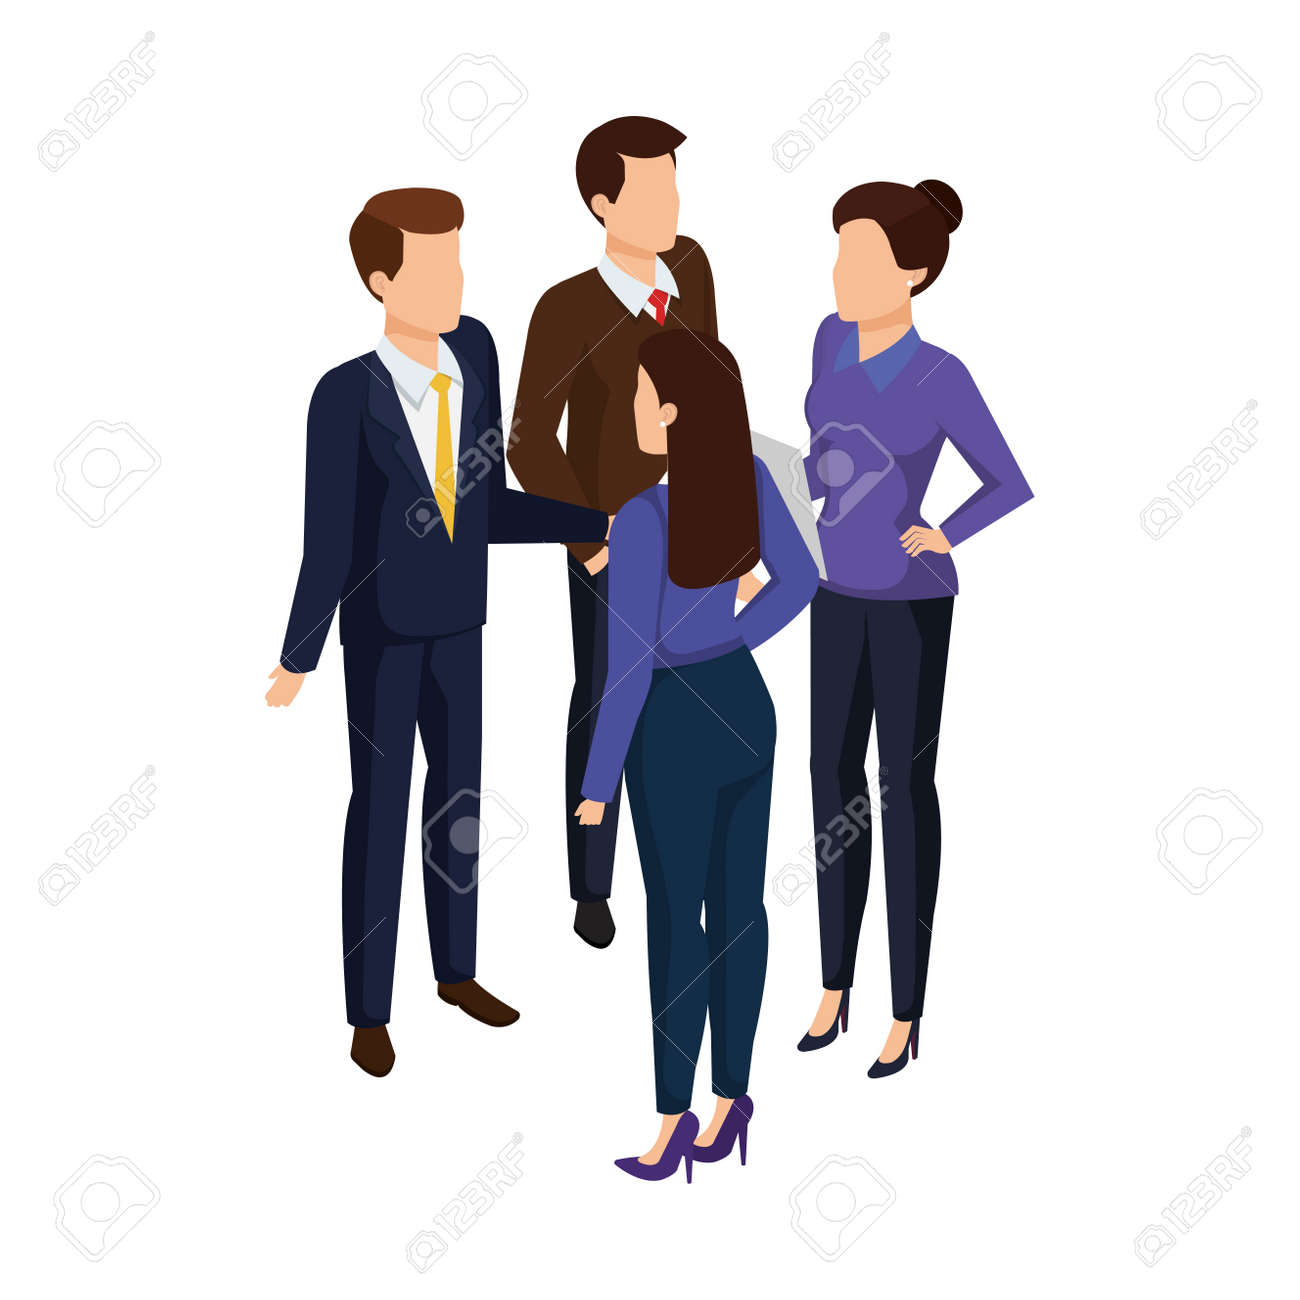 group of business people avatars characters vector illustration design - 127009406